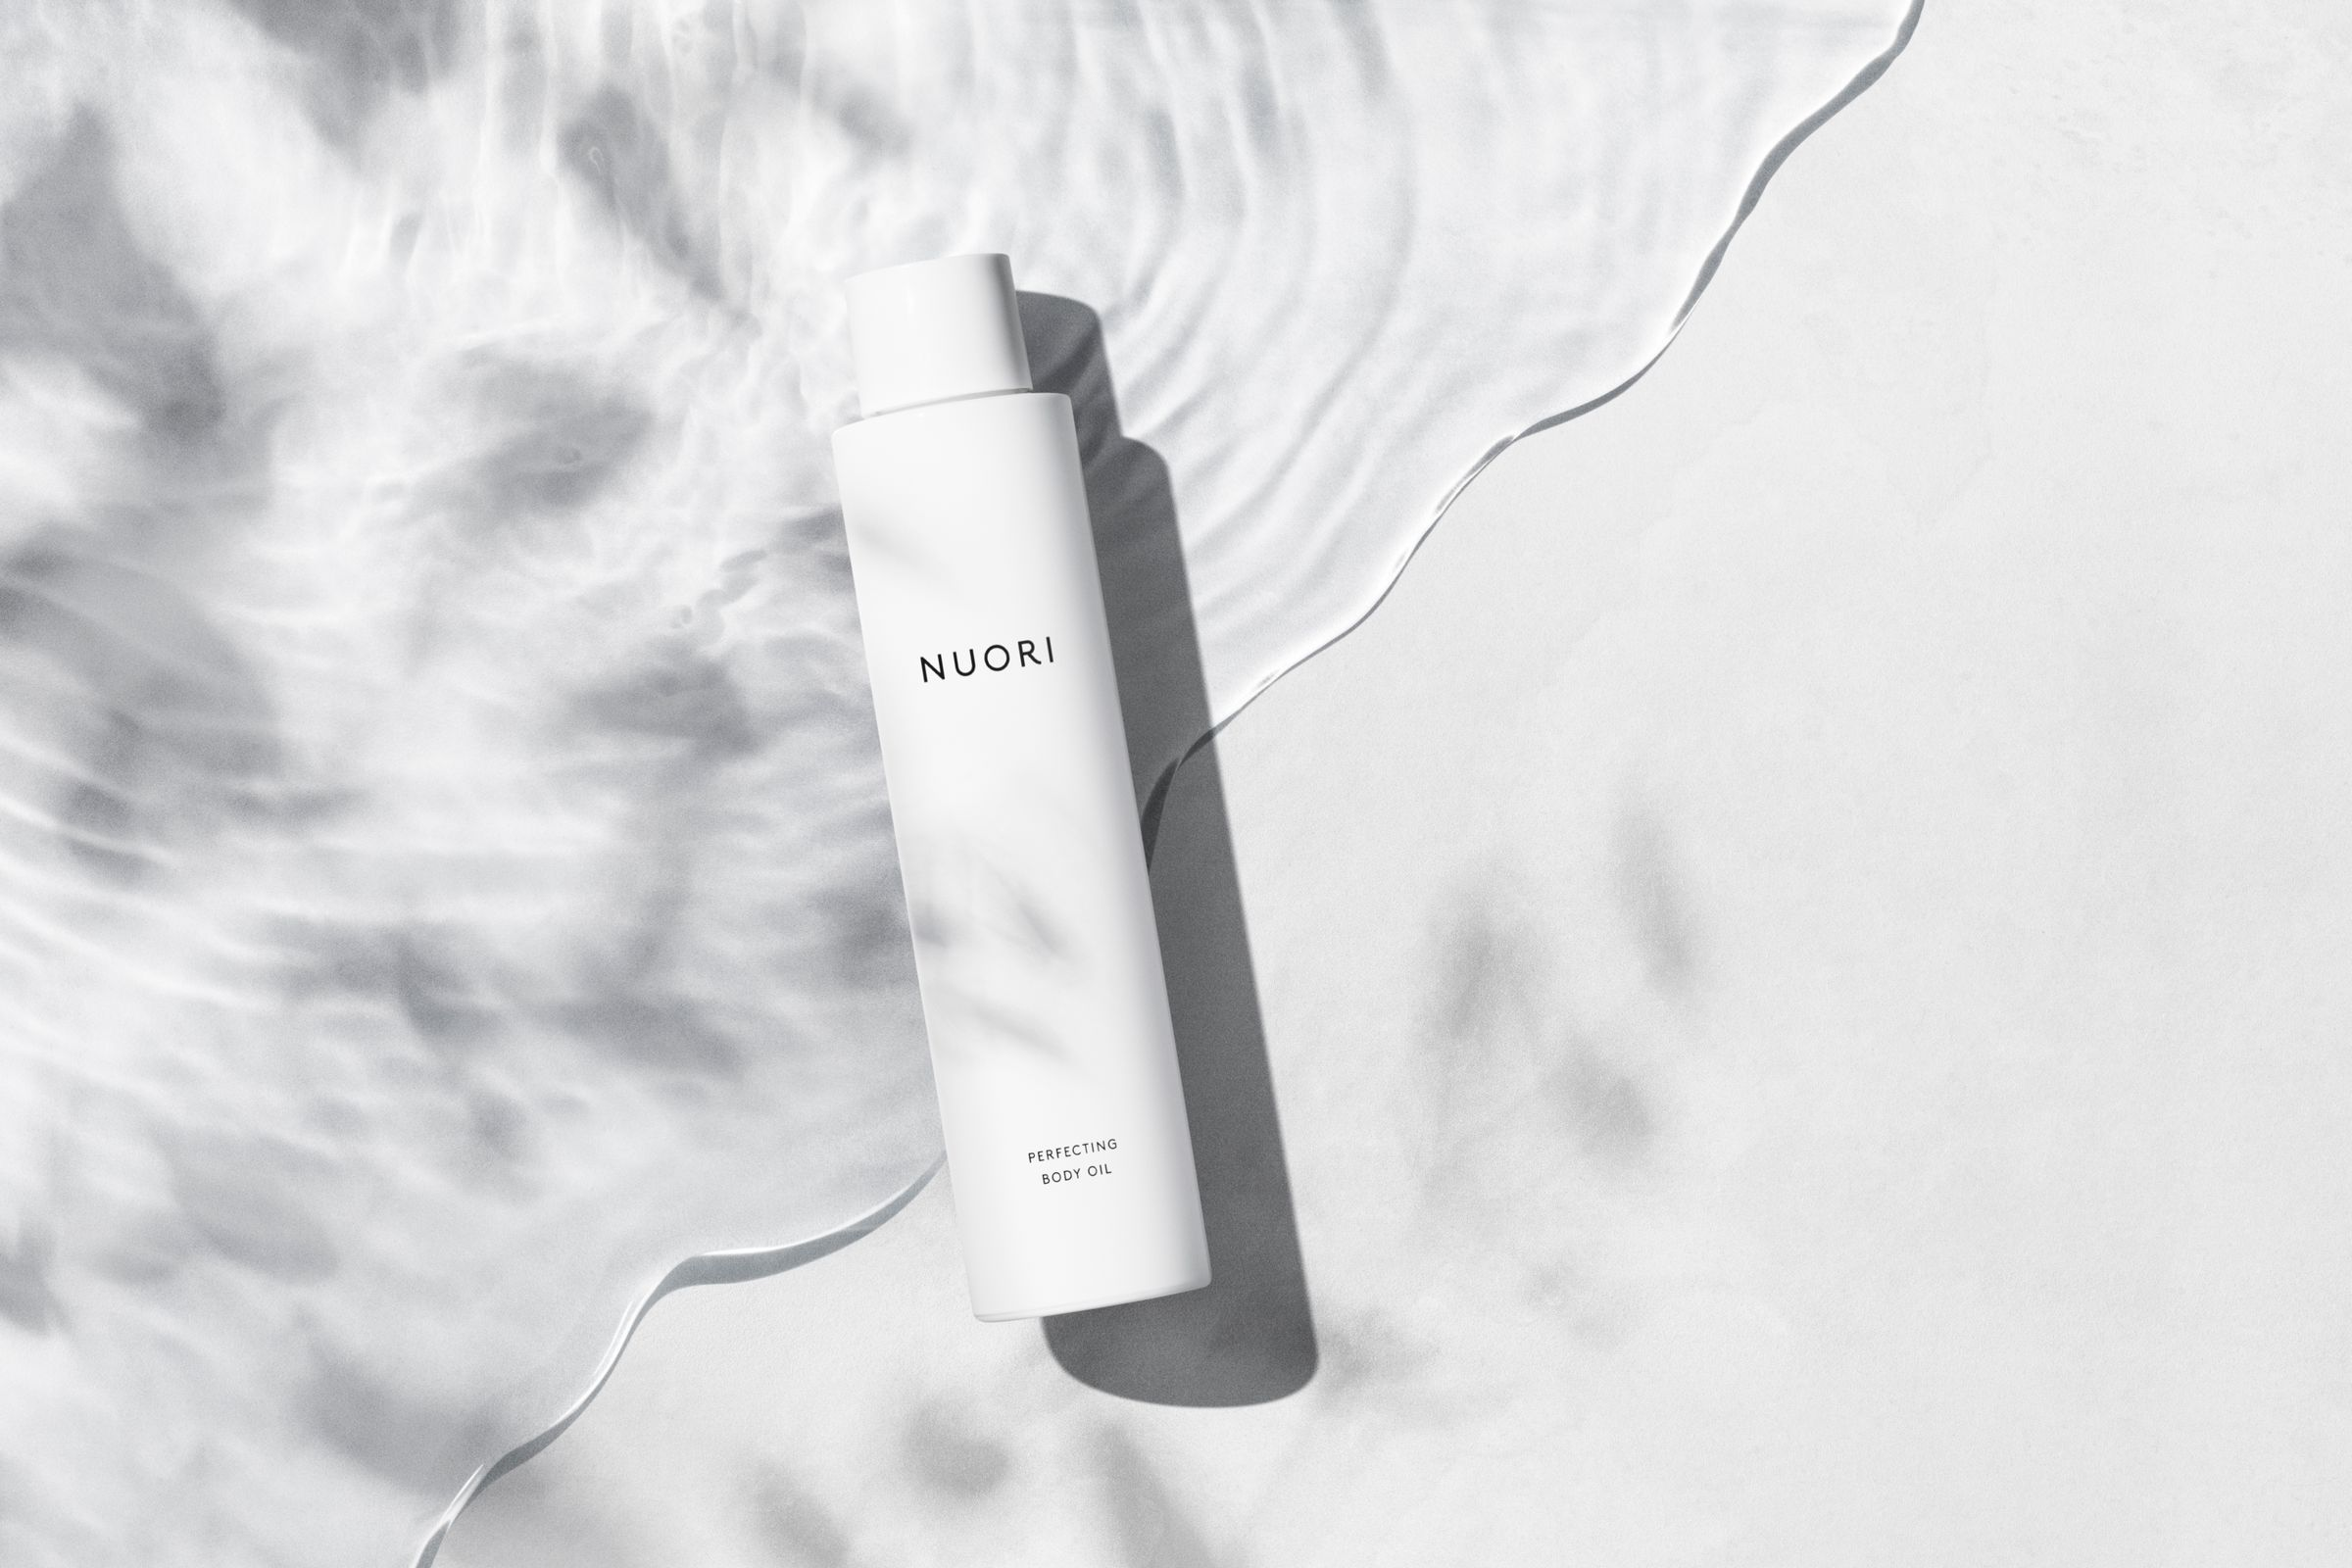 Nuori packaging design